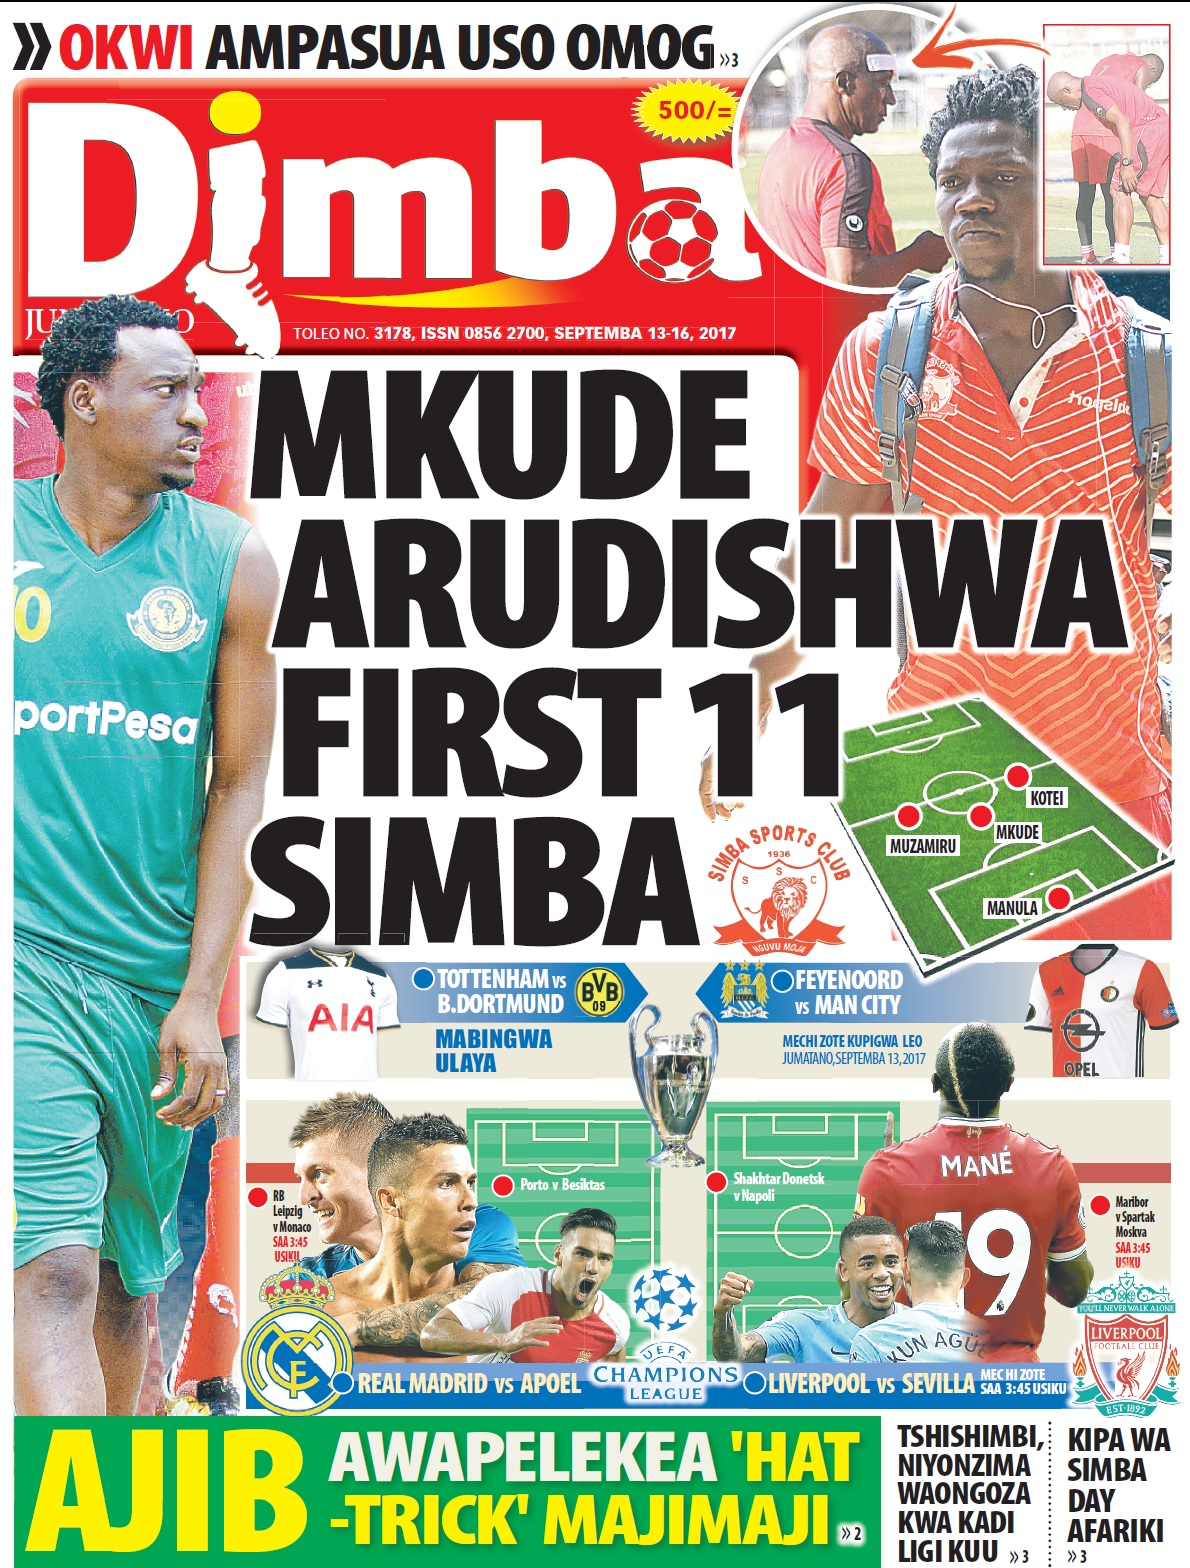 MKUDE ARUDISHWA FIRST 11